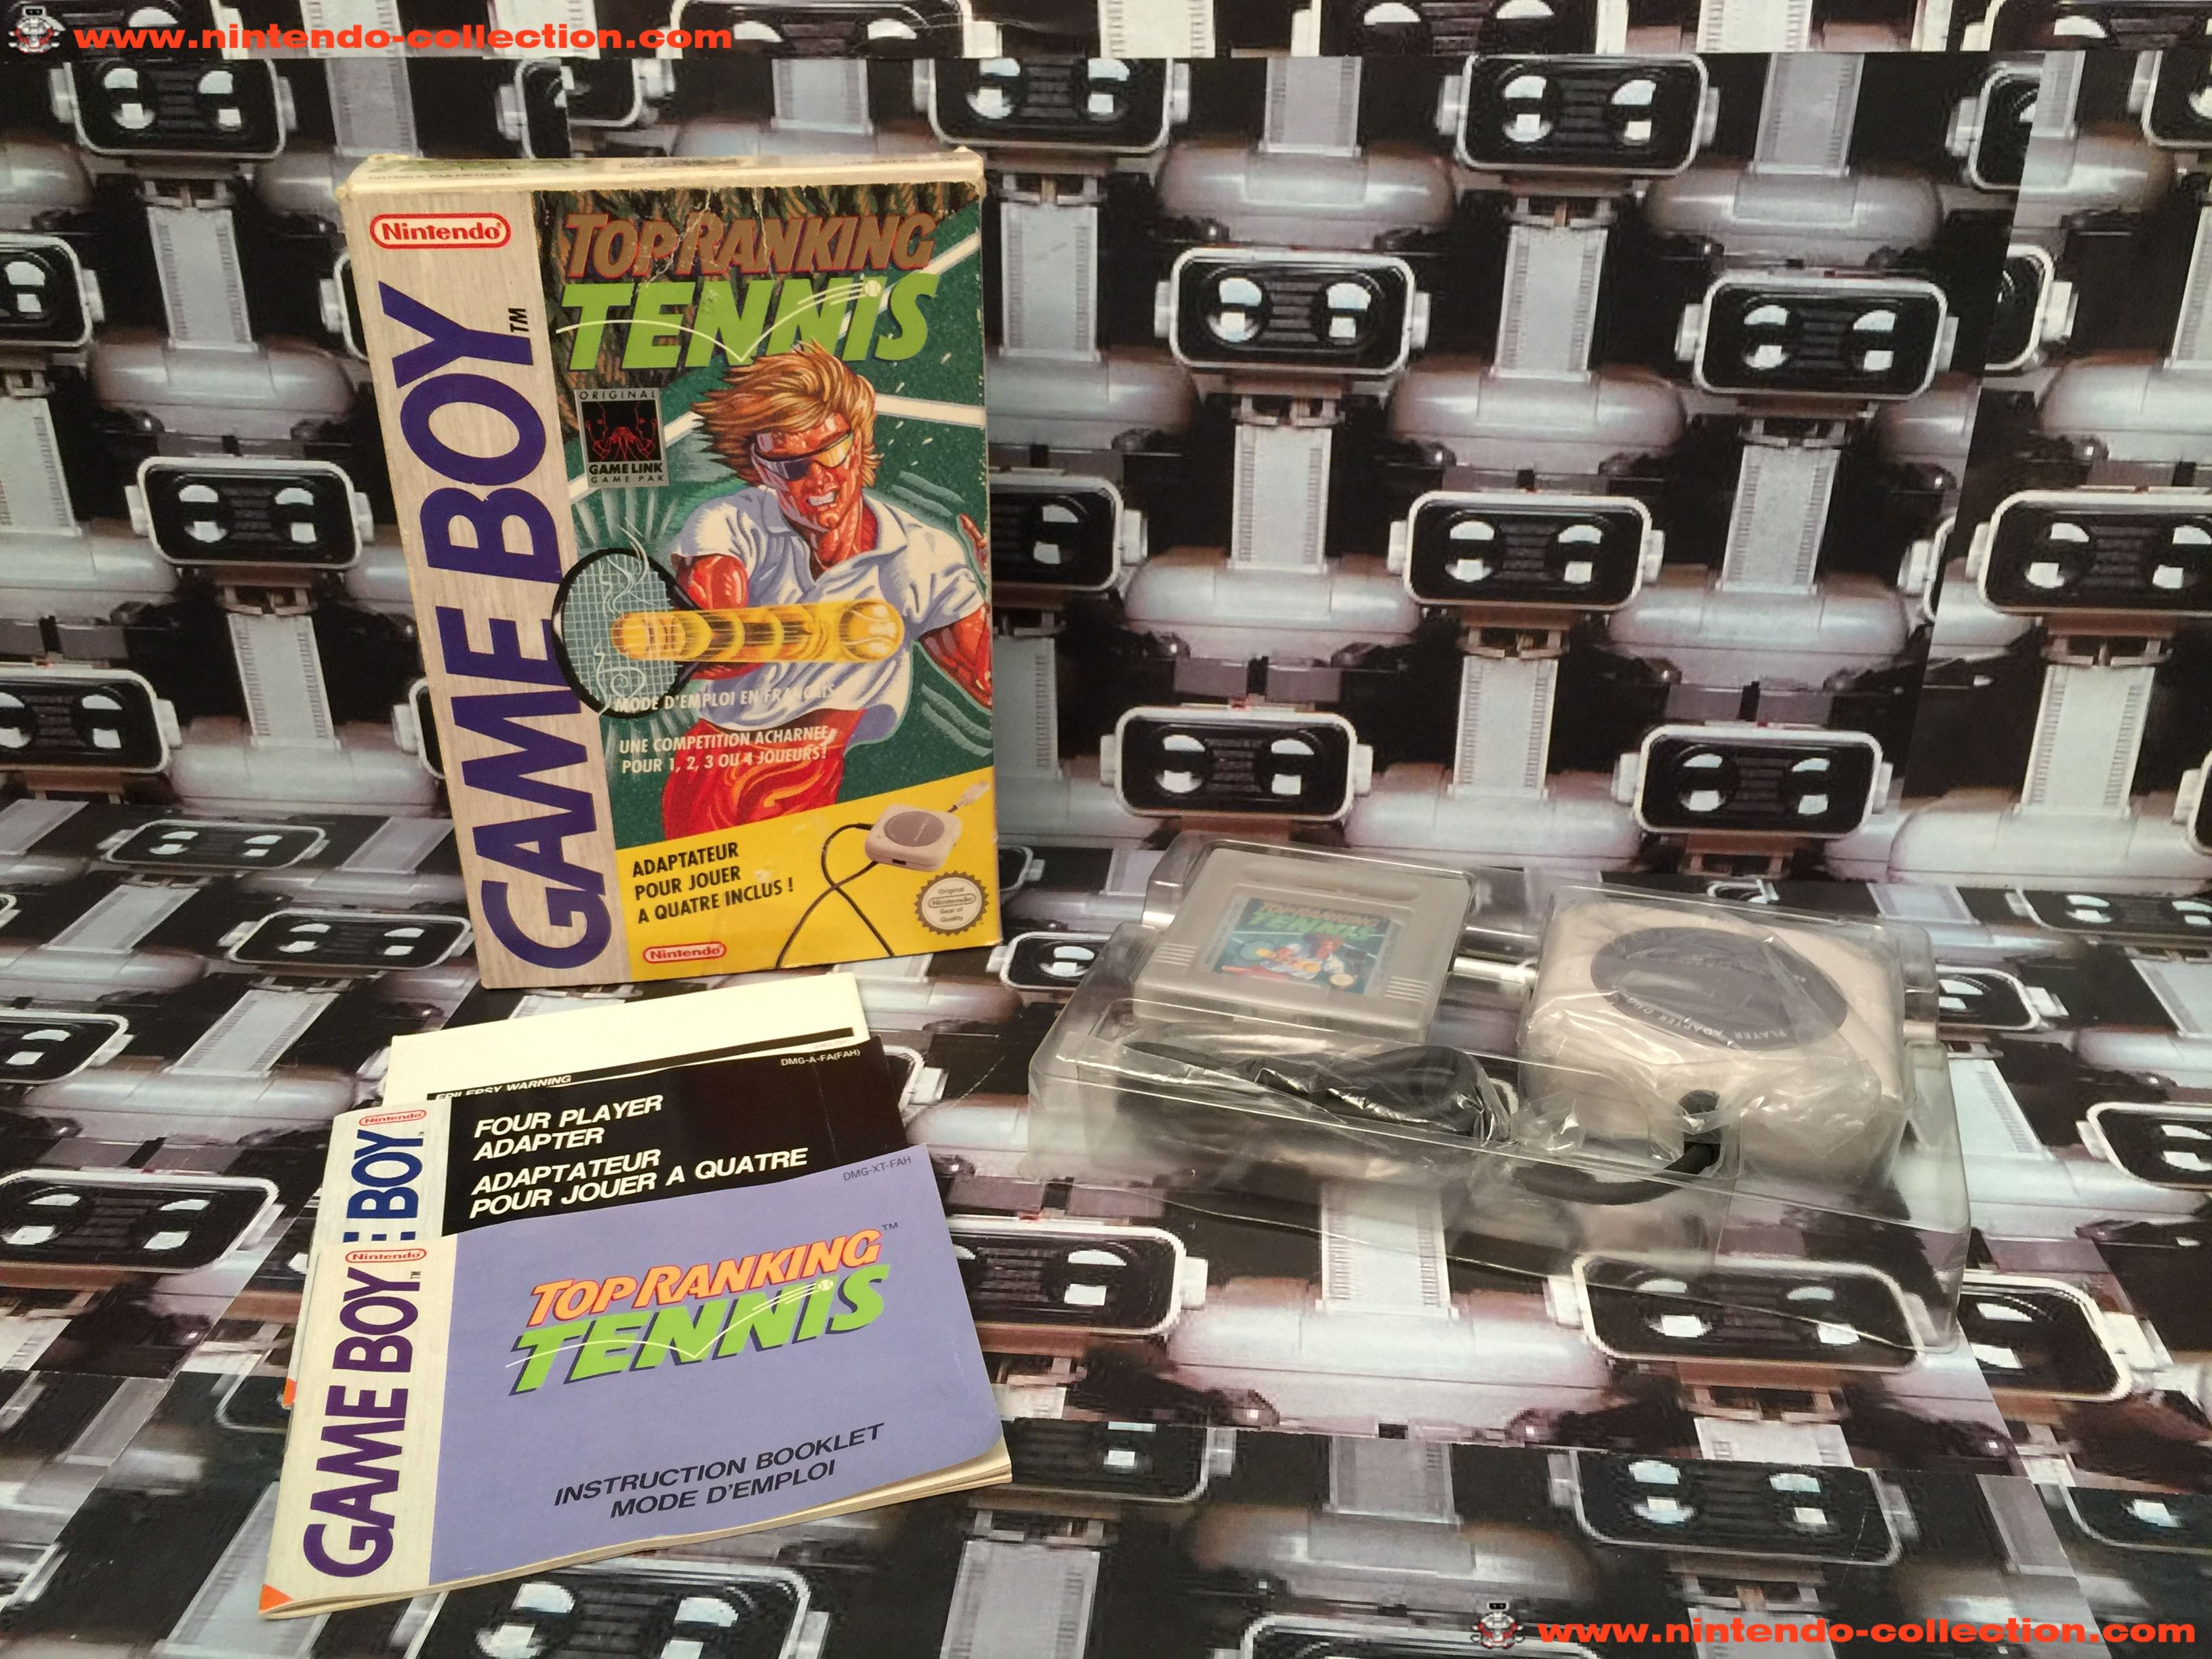 www.nintendo-collection.com - Gameboy Game Jeux Top Ranking Tennis +4 player Link